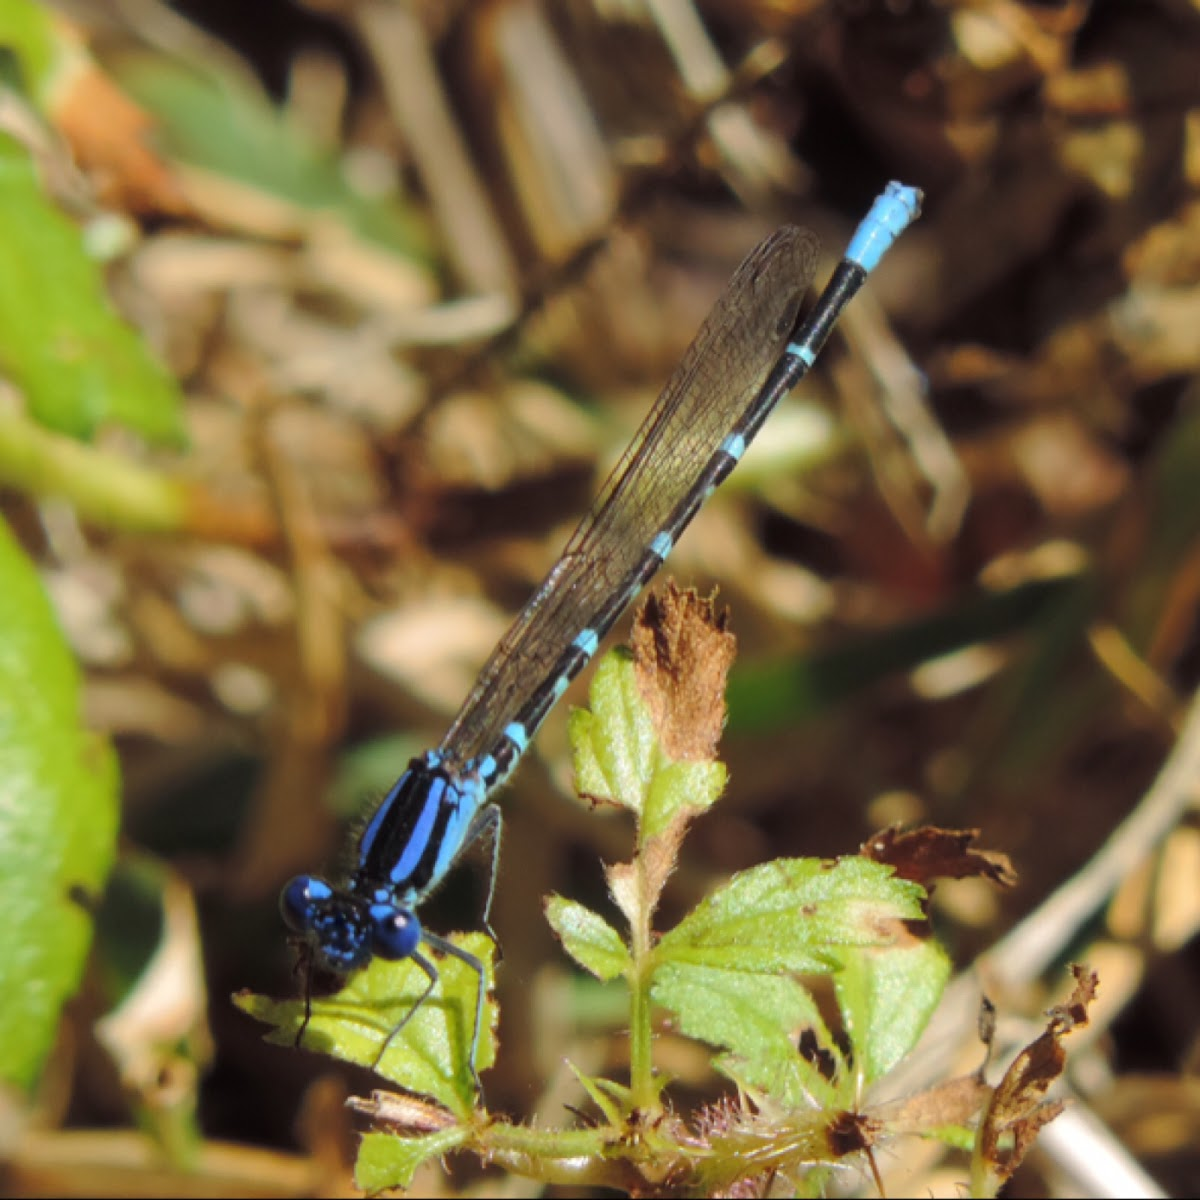 Blue-ringed Dancer